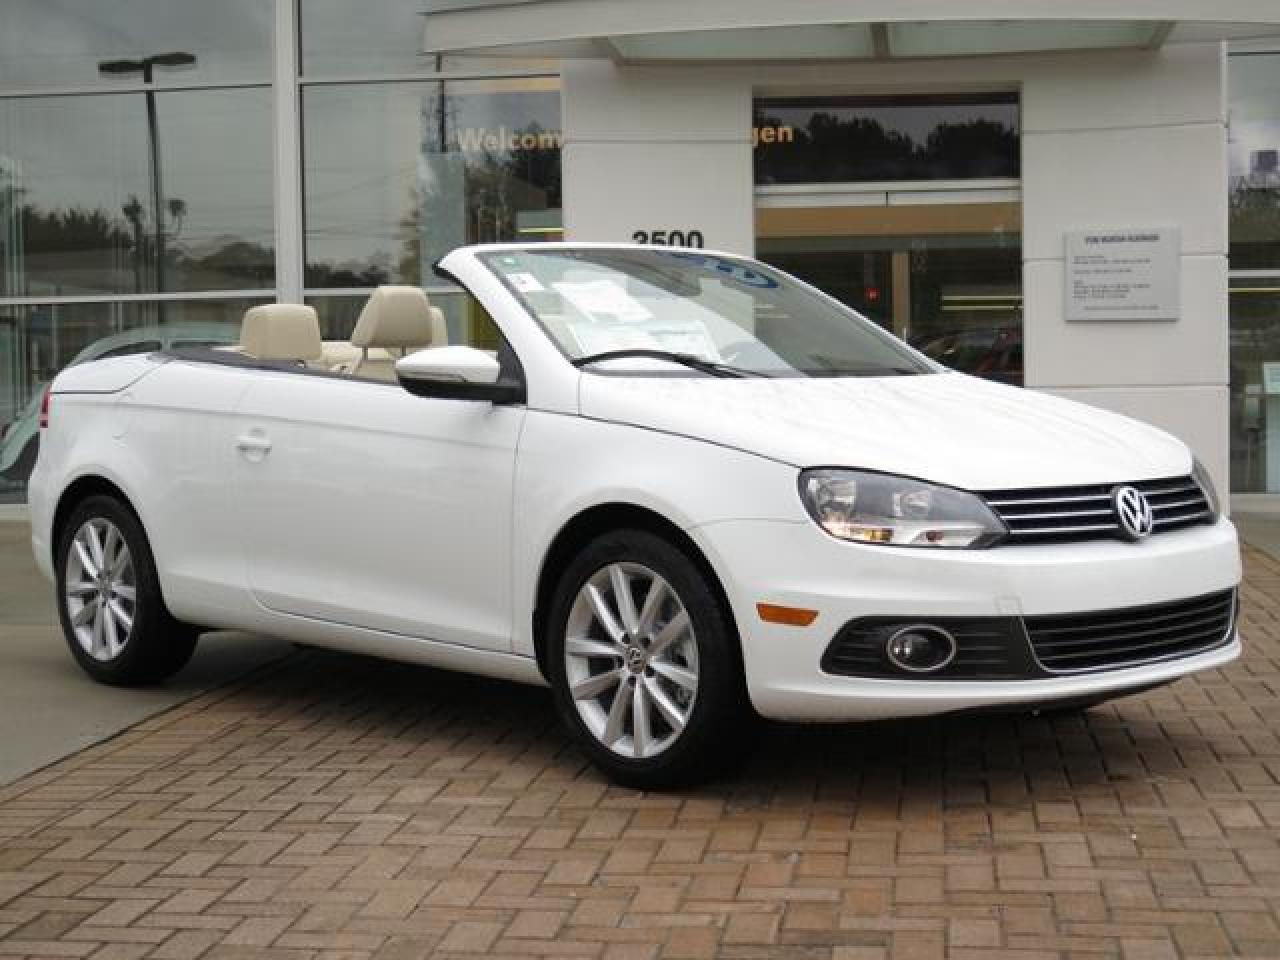 2015 volkswagen eos information and photos zombiedrive. Black Bedroom Furniture Sets. Home Design Ideas